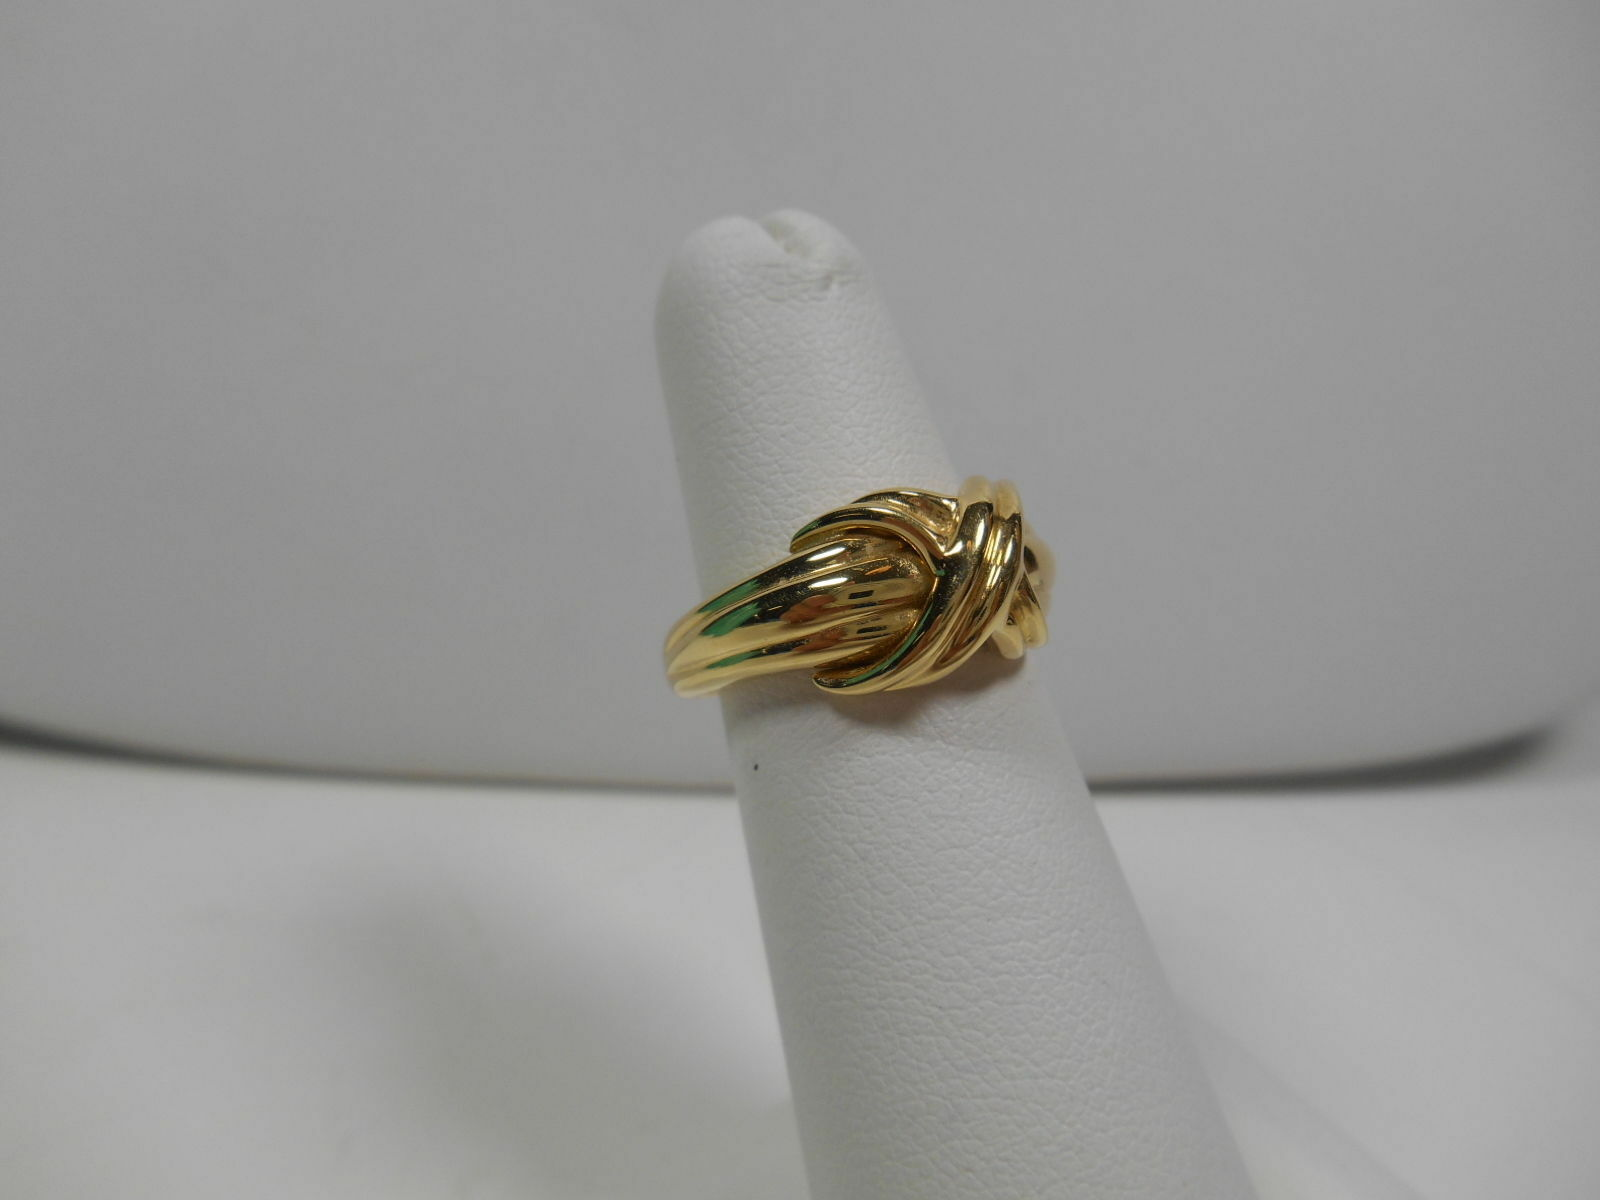 Tiffany & Co 18K Gold Signature X Kiss Cross Rare Wide Band Ring Sz 6 Exc Cond.